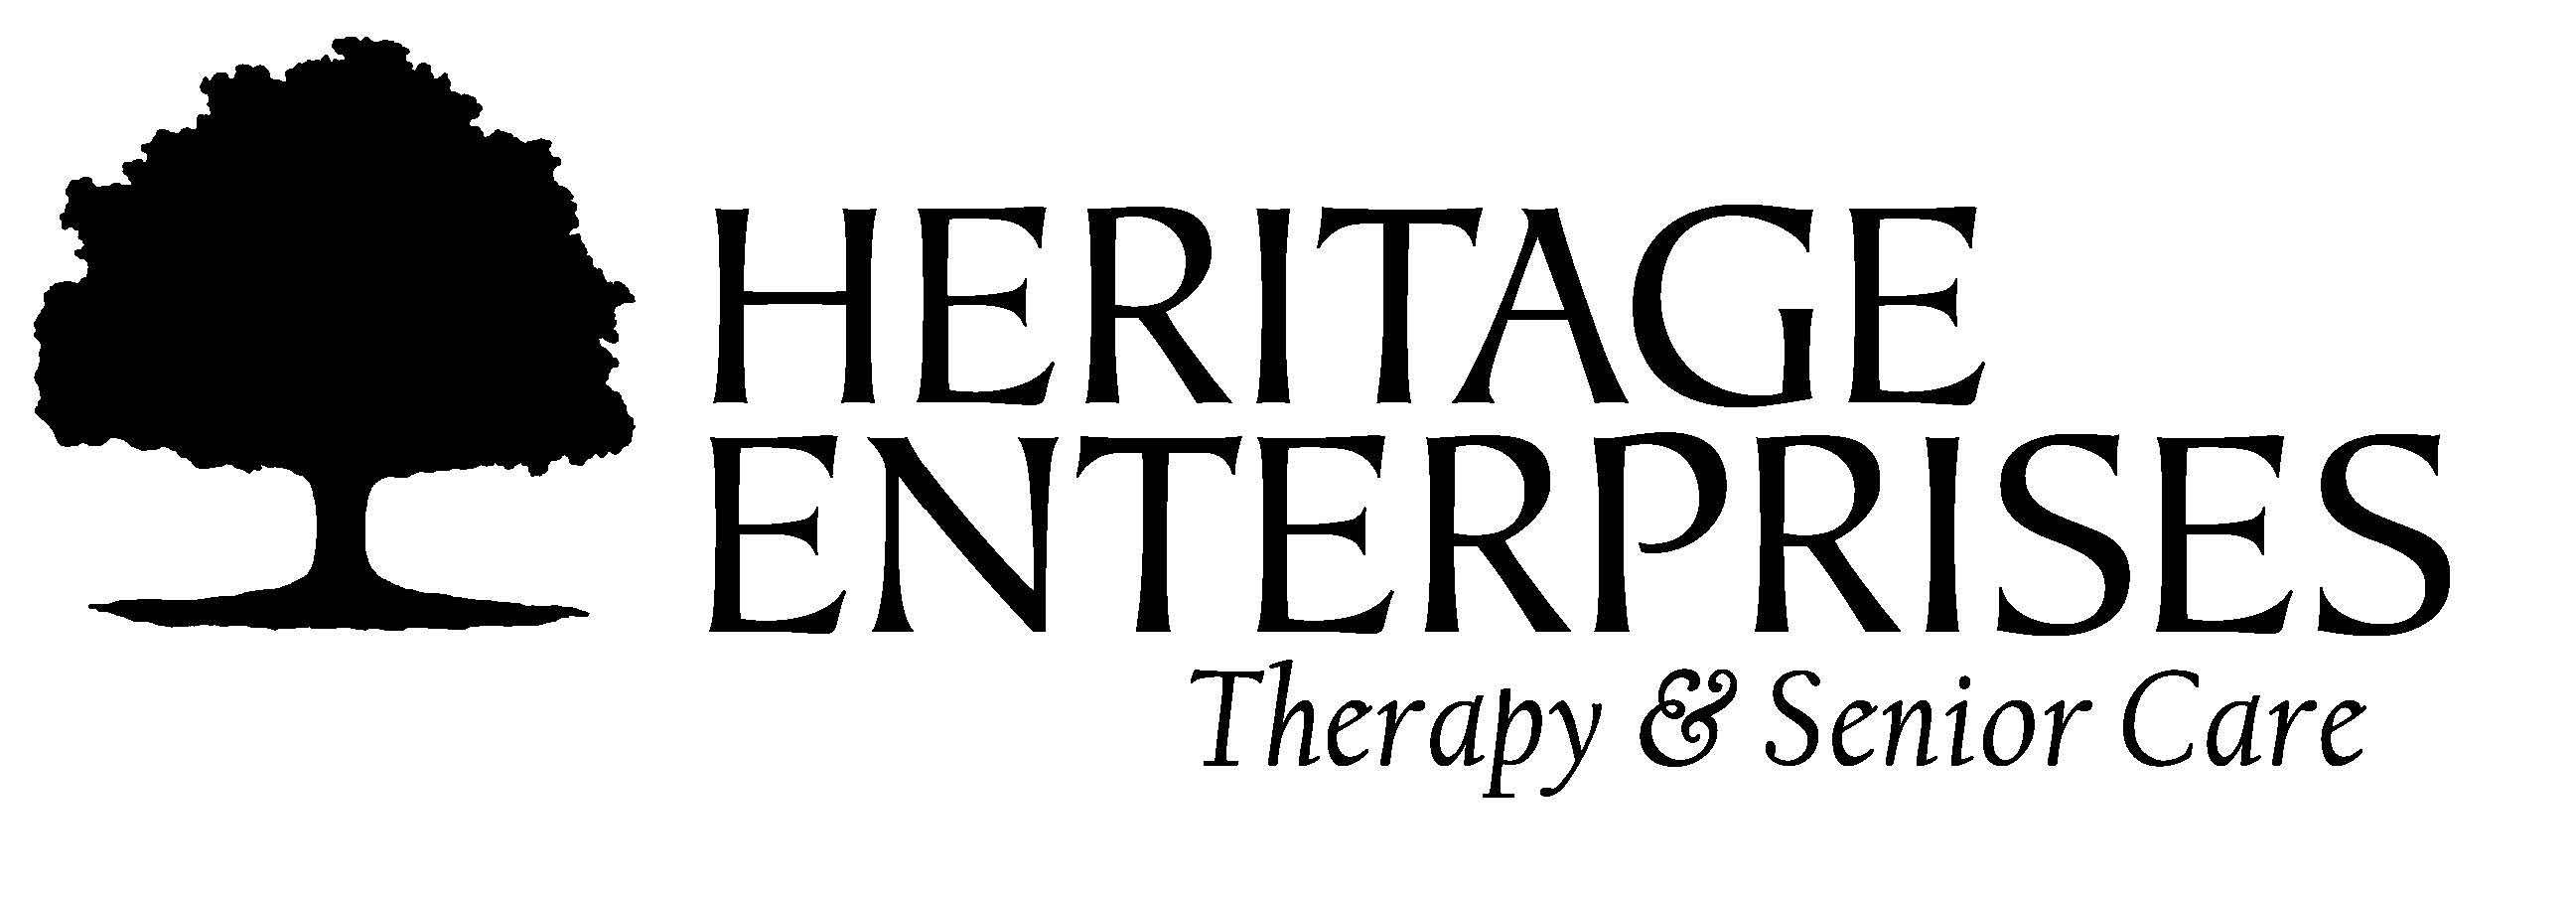 Heritage Enterprises